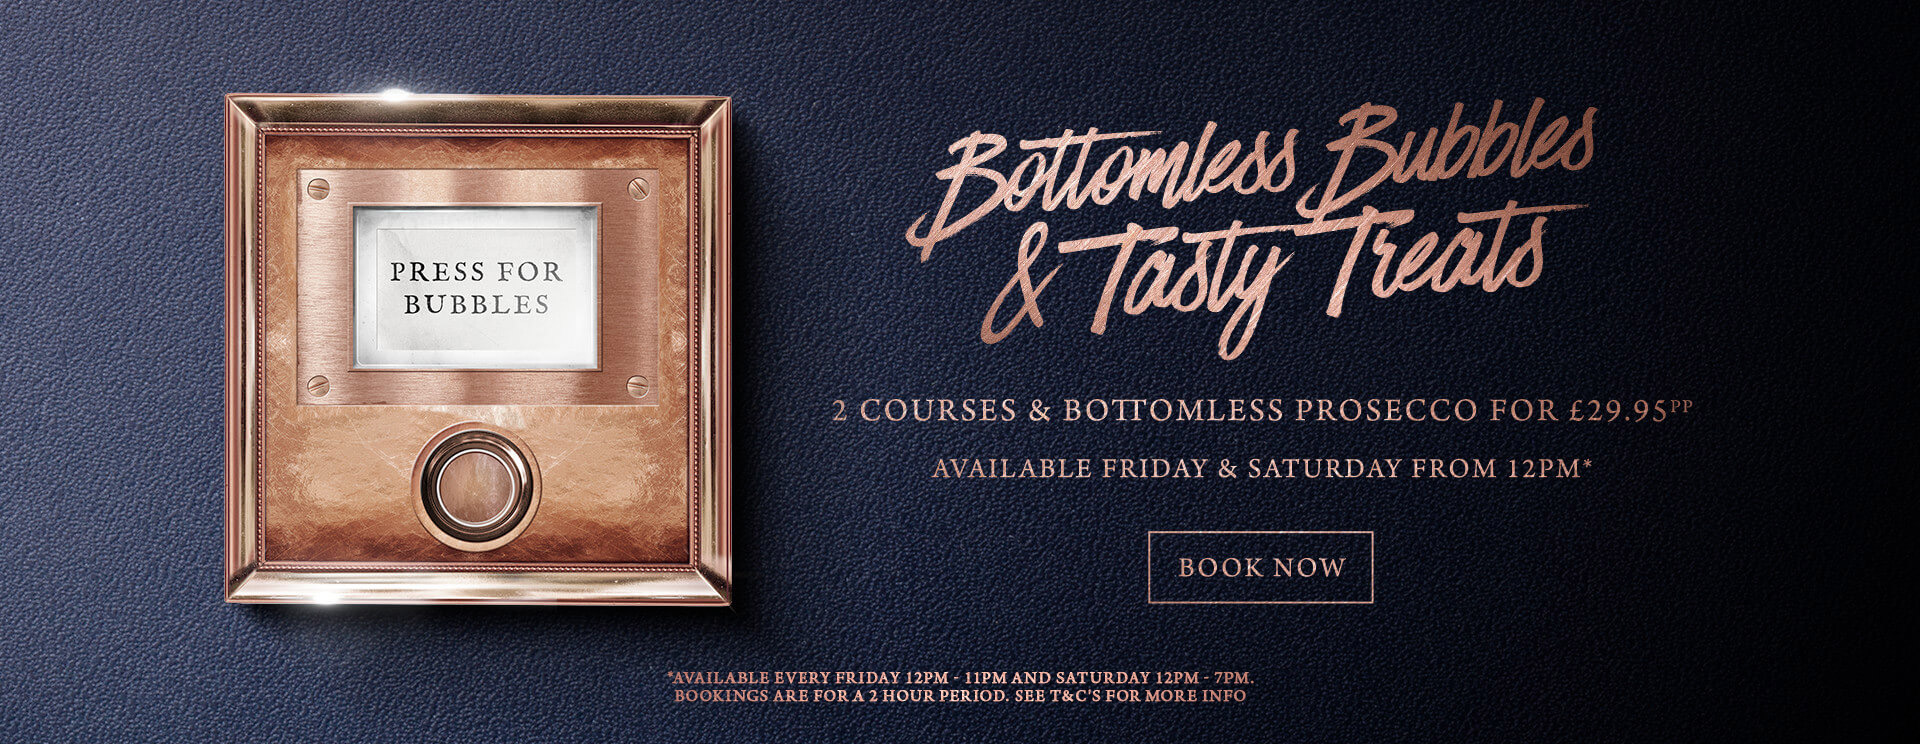 Bottomless Bubbles The Green House - Book now